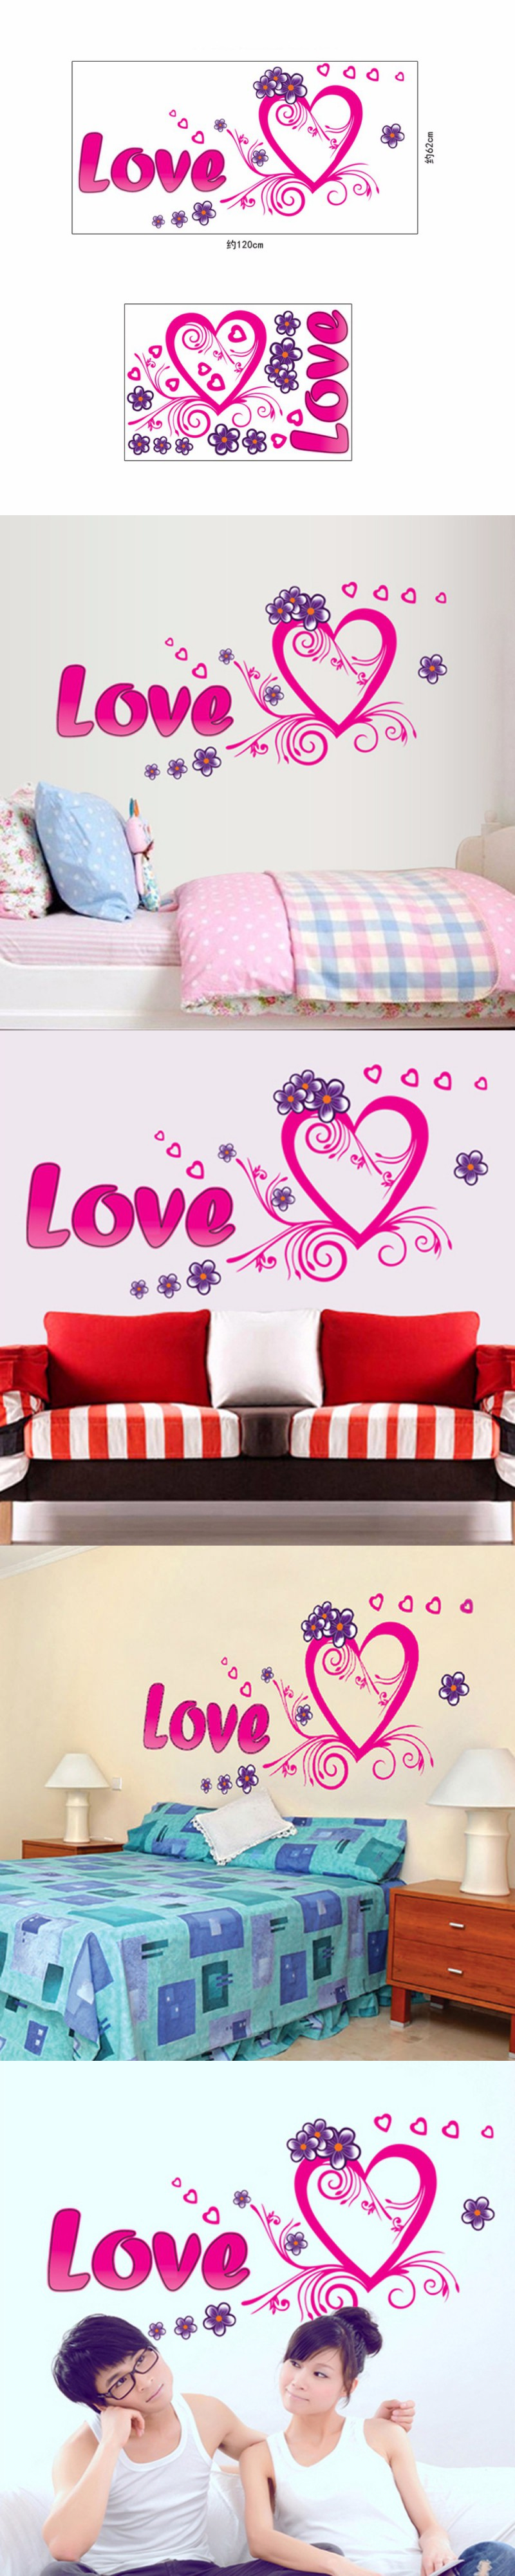 High Quality Love Sweethearts Cozy Bedrooms Living Room Background Stickers  Home Decor Removable Wall Stickers